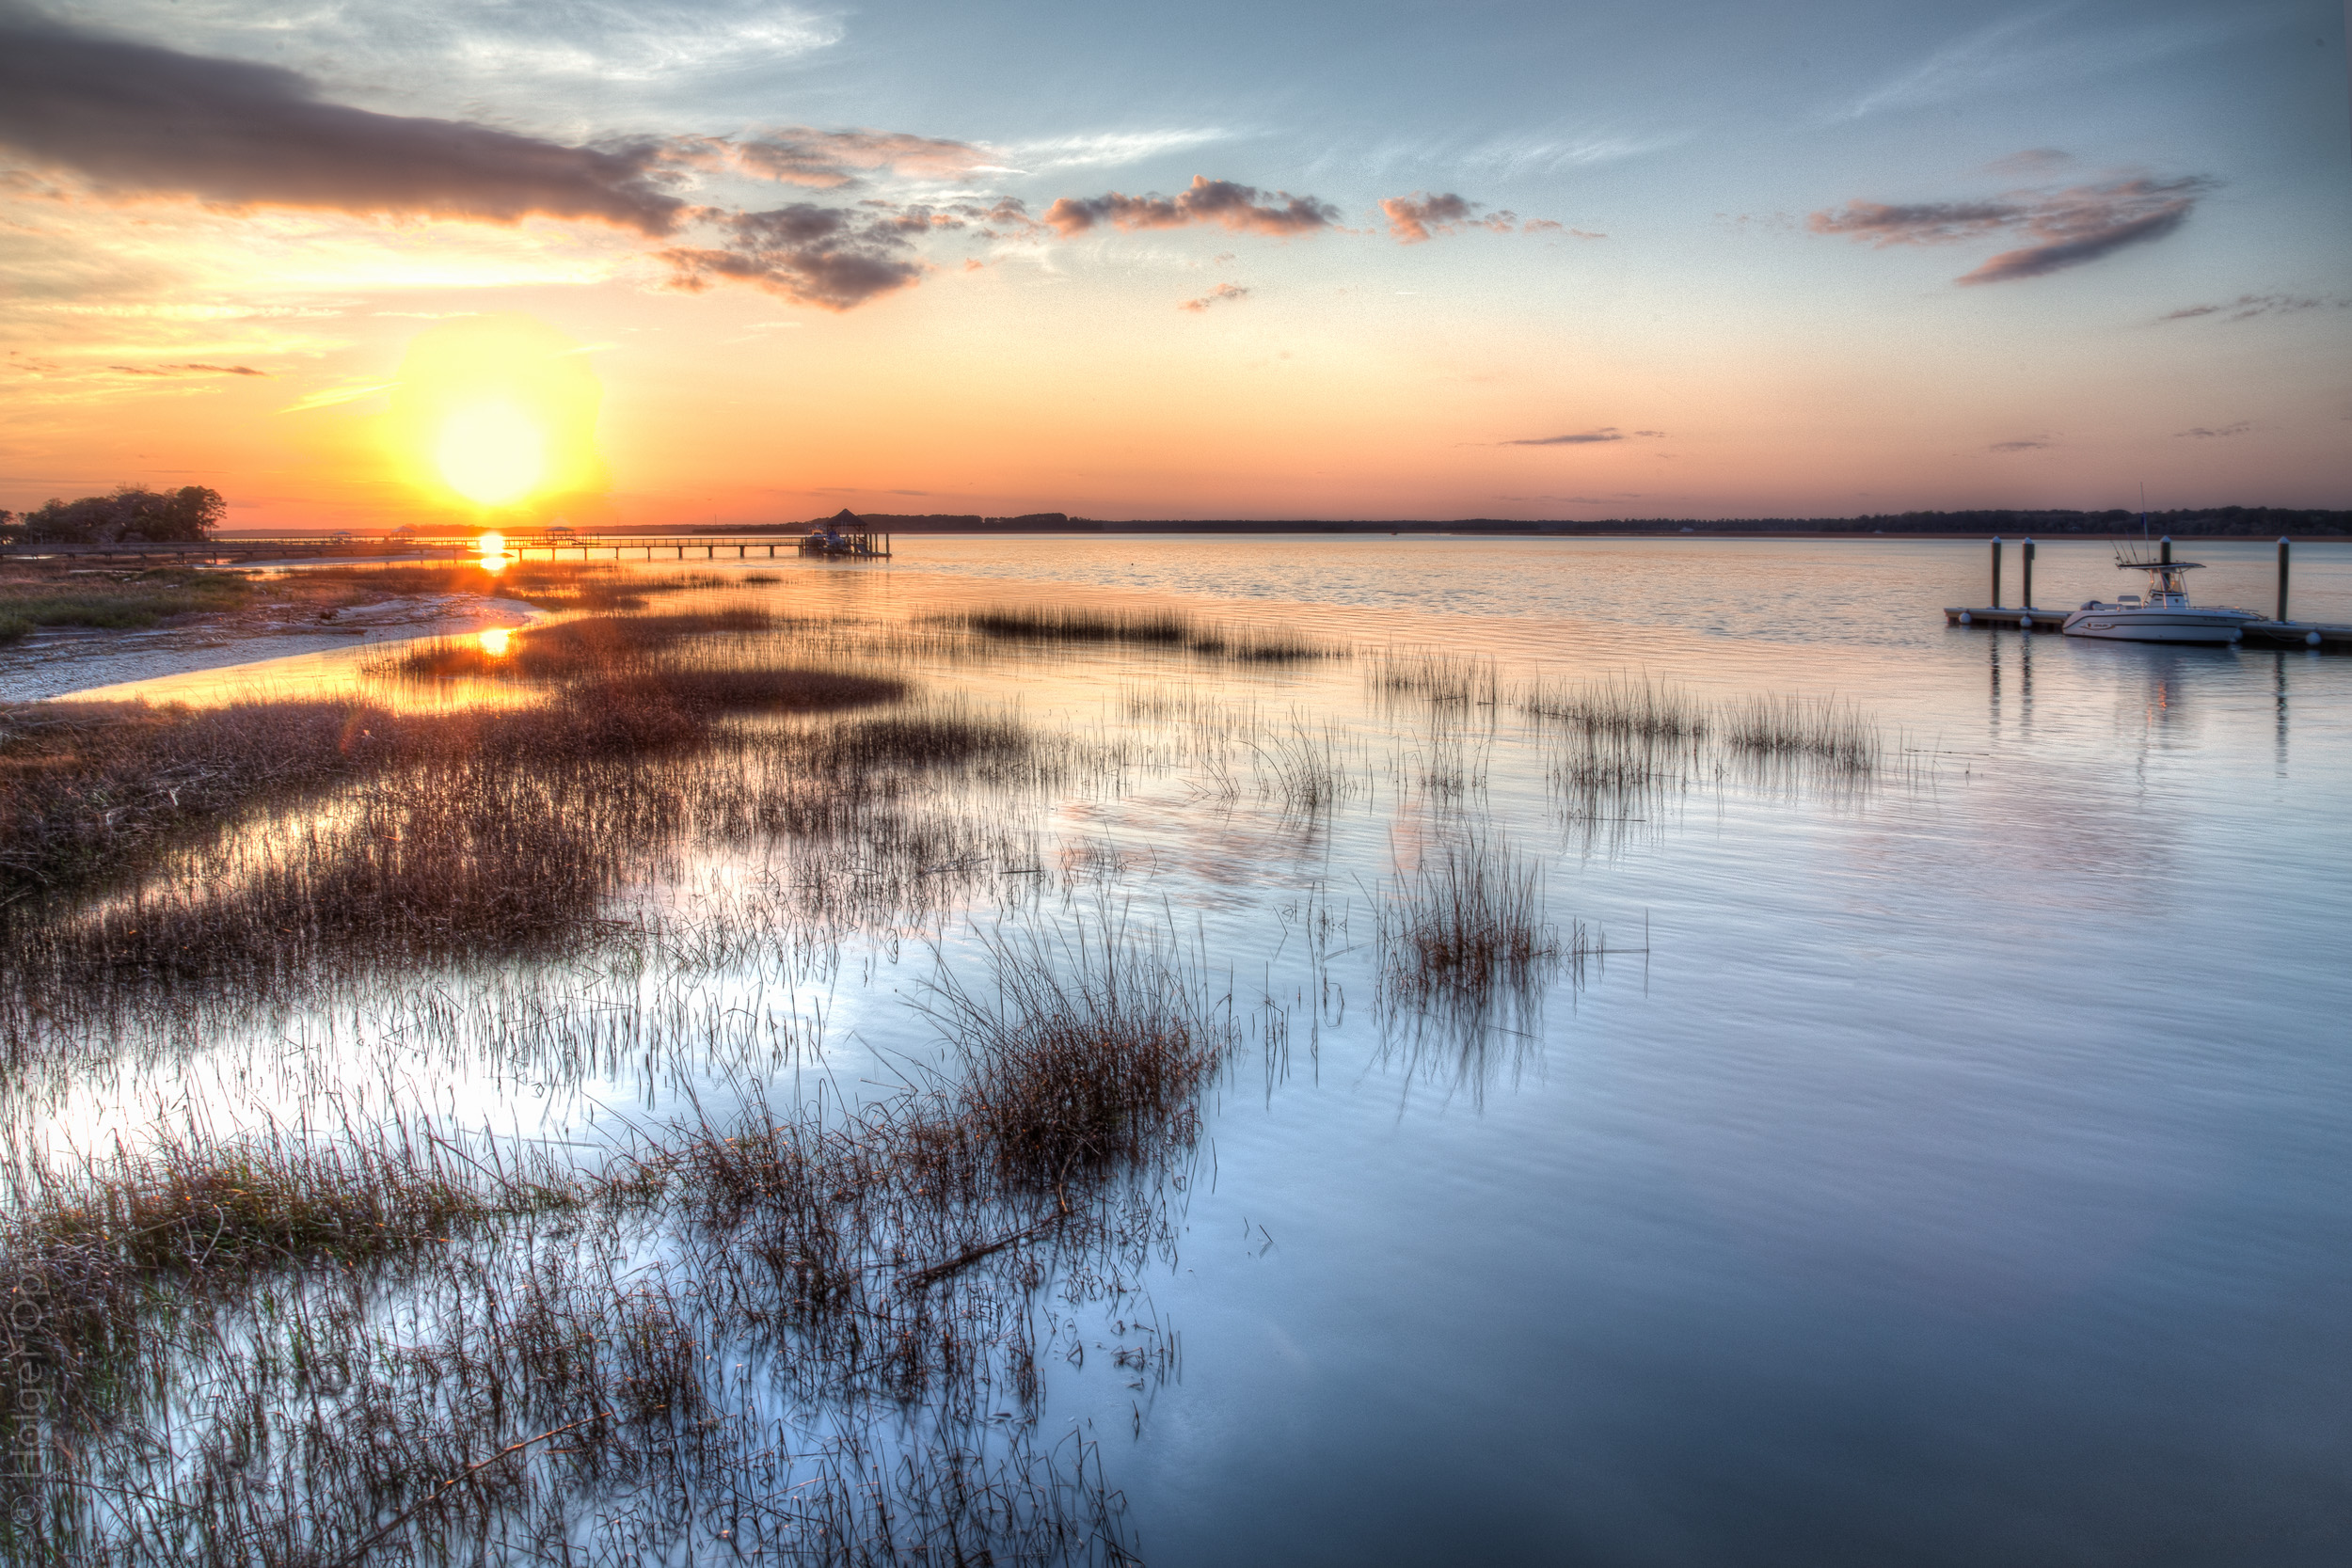 010 sunset-intracoastal-grasses-PS2.jpg